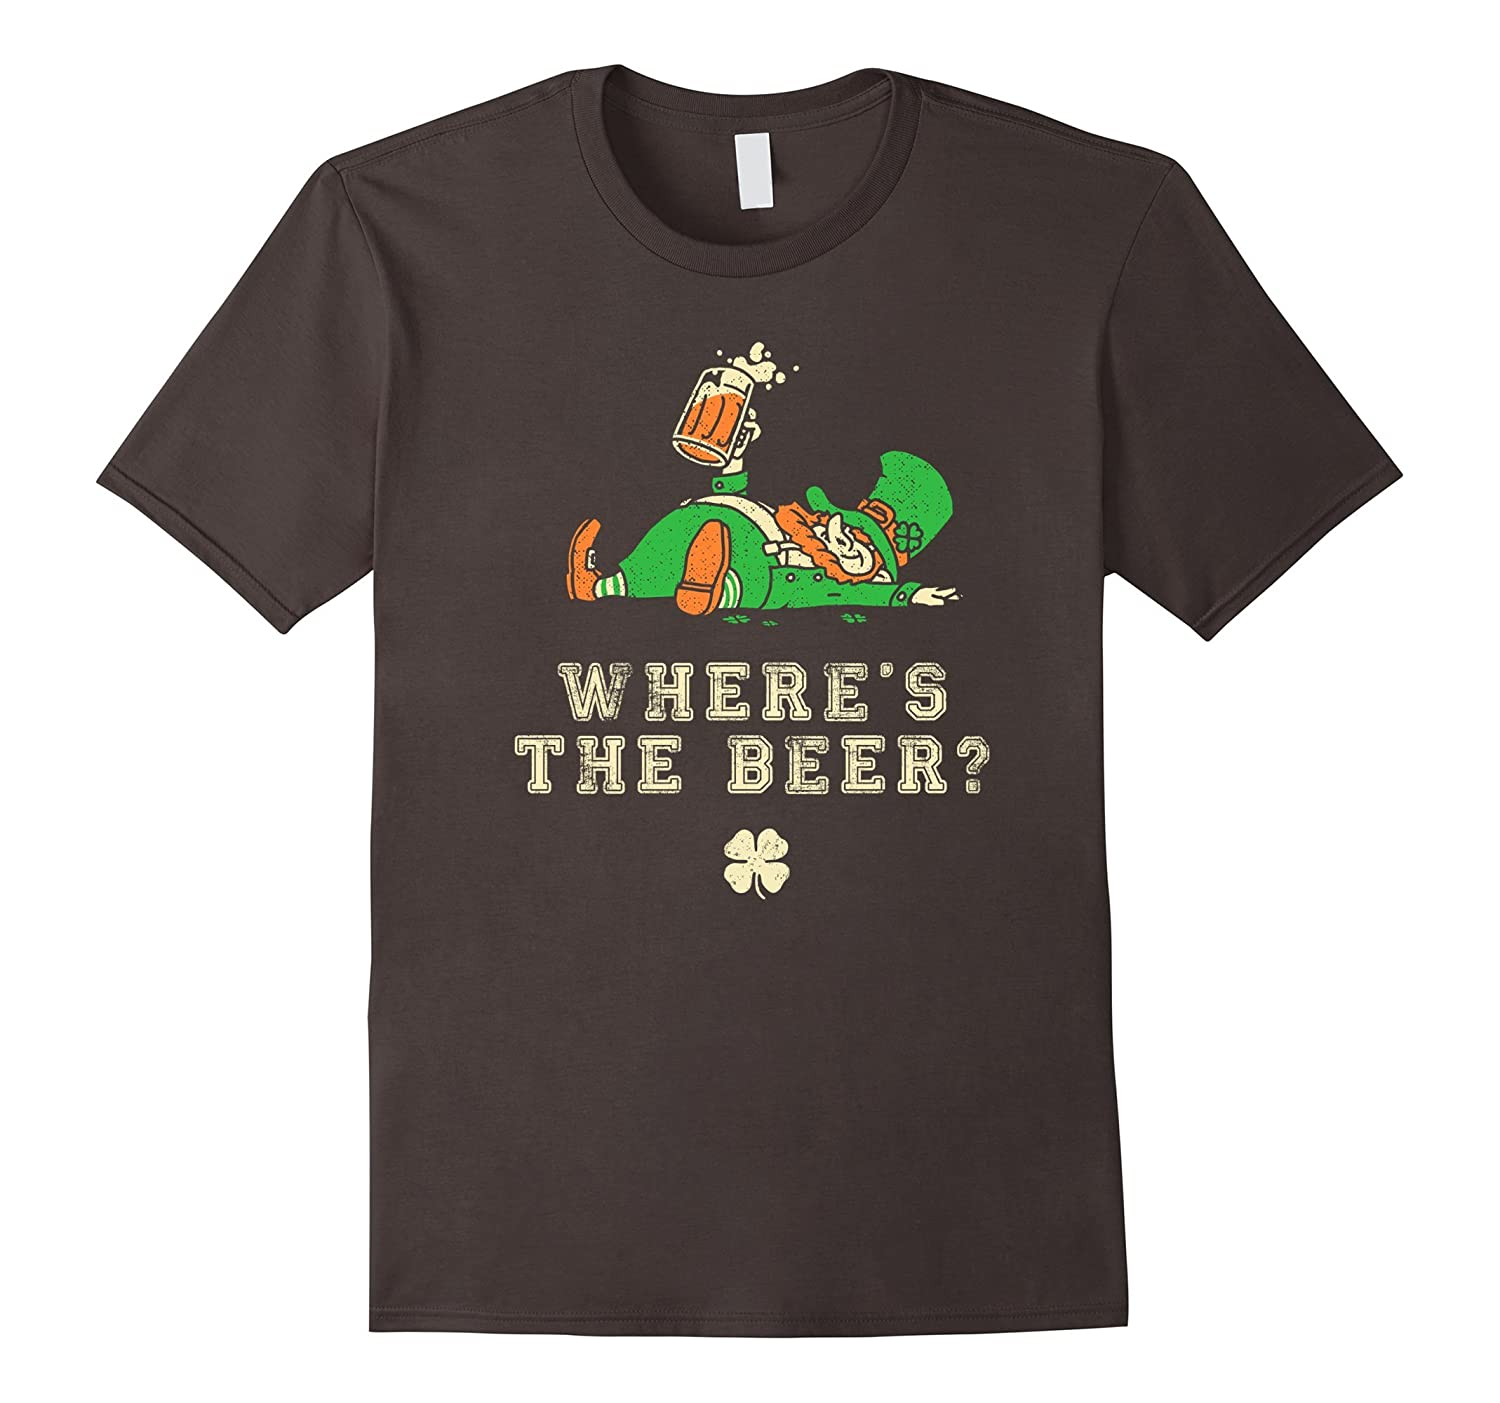 St Patricks Day Funny Shirt - Wheres the Beer?-TD